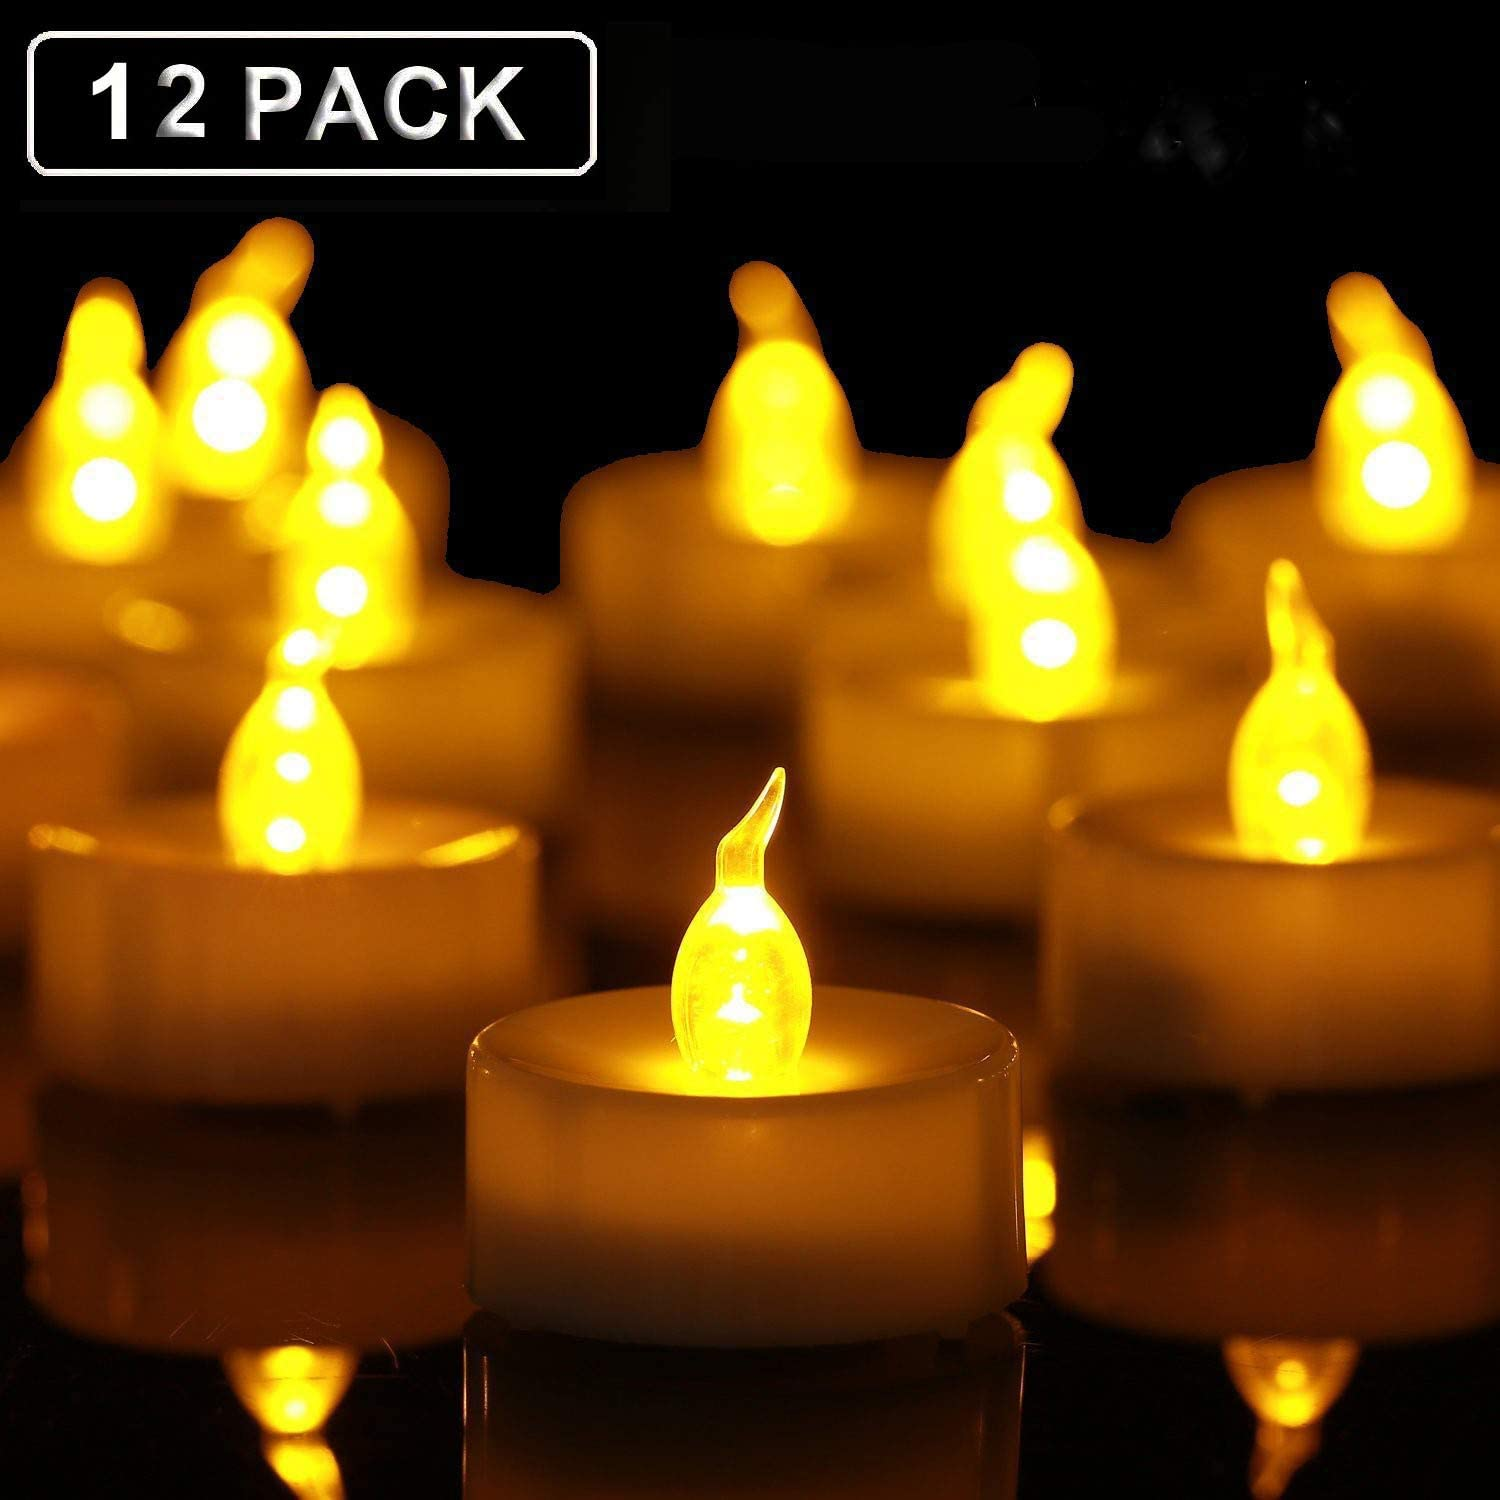 Ideal for Parties Weddings Birthdays Tea Lights,Flameless LED Tealight Candles,Flickering Warm Yellow 100+ Hours Battery Operated LED Tea Lights Candles 12 Pack Gifts and Home.